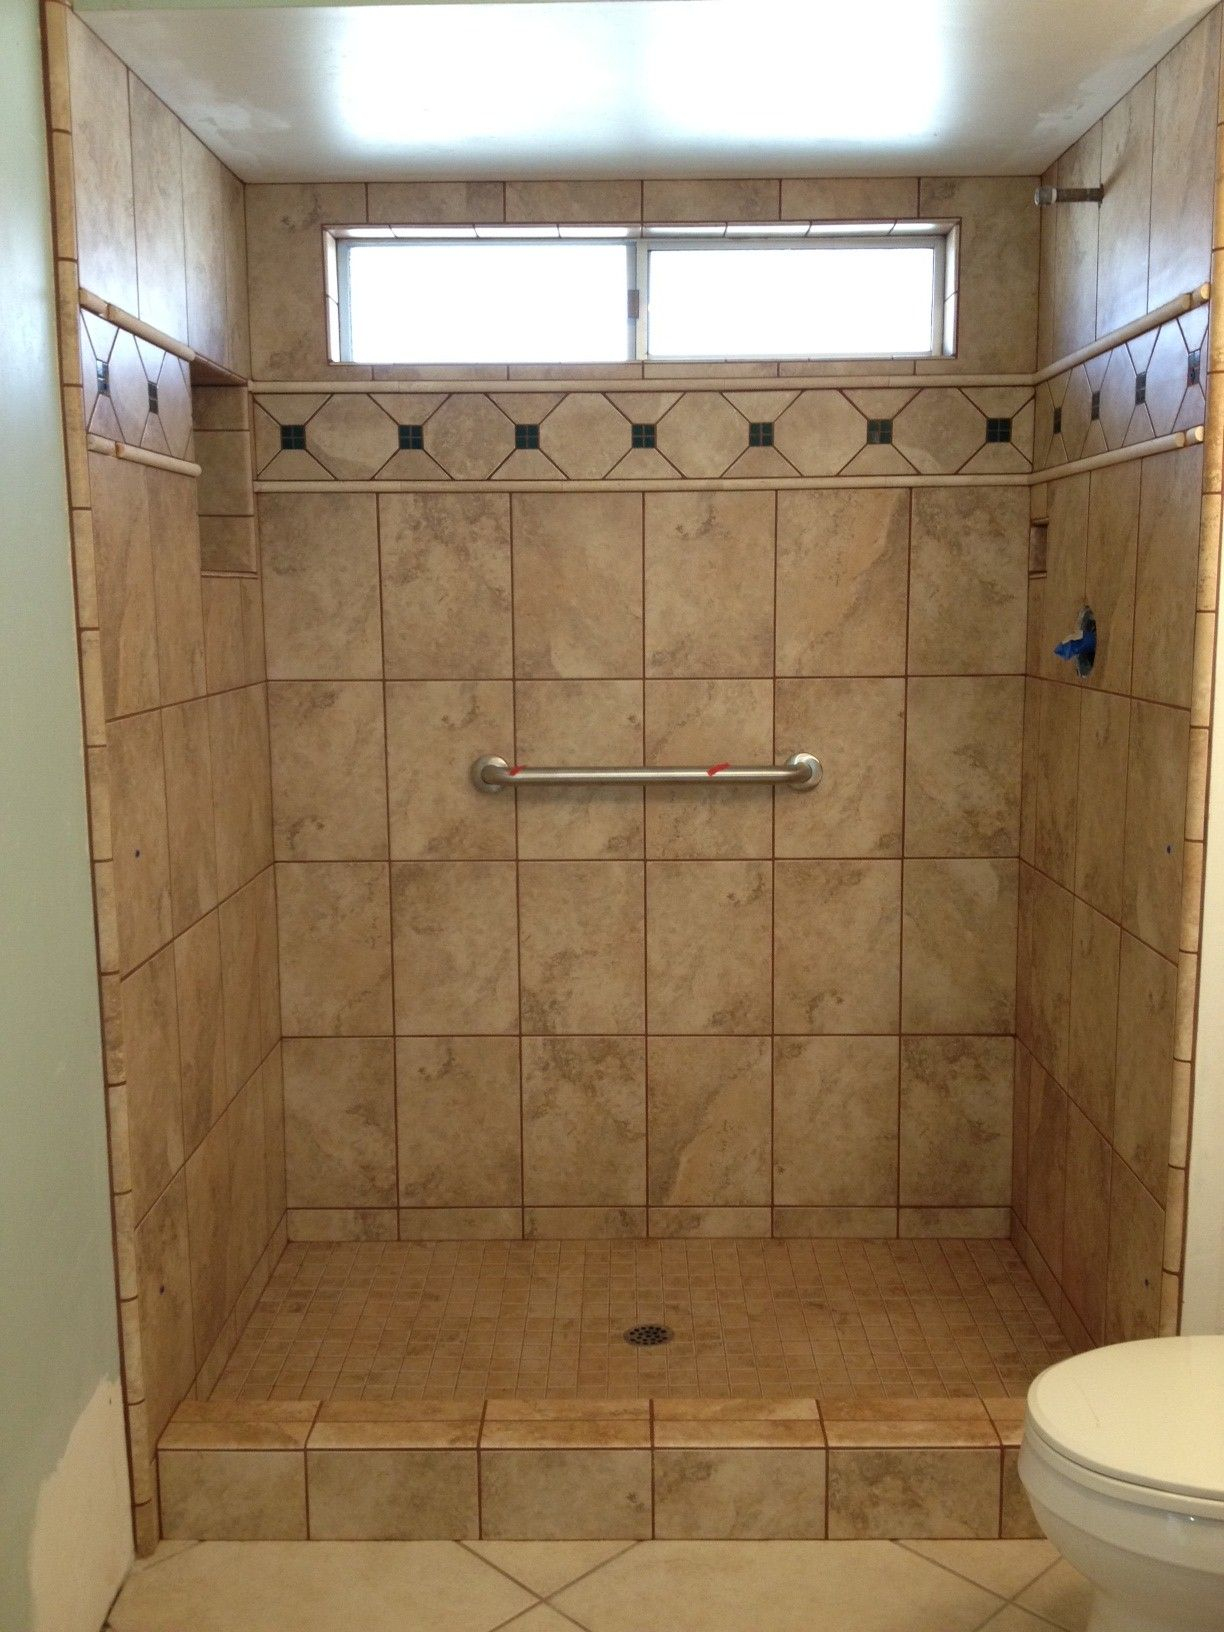 photos of tiled shower stalls photos gallery custom